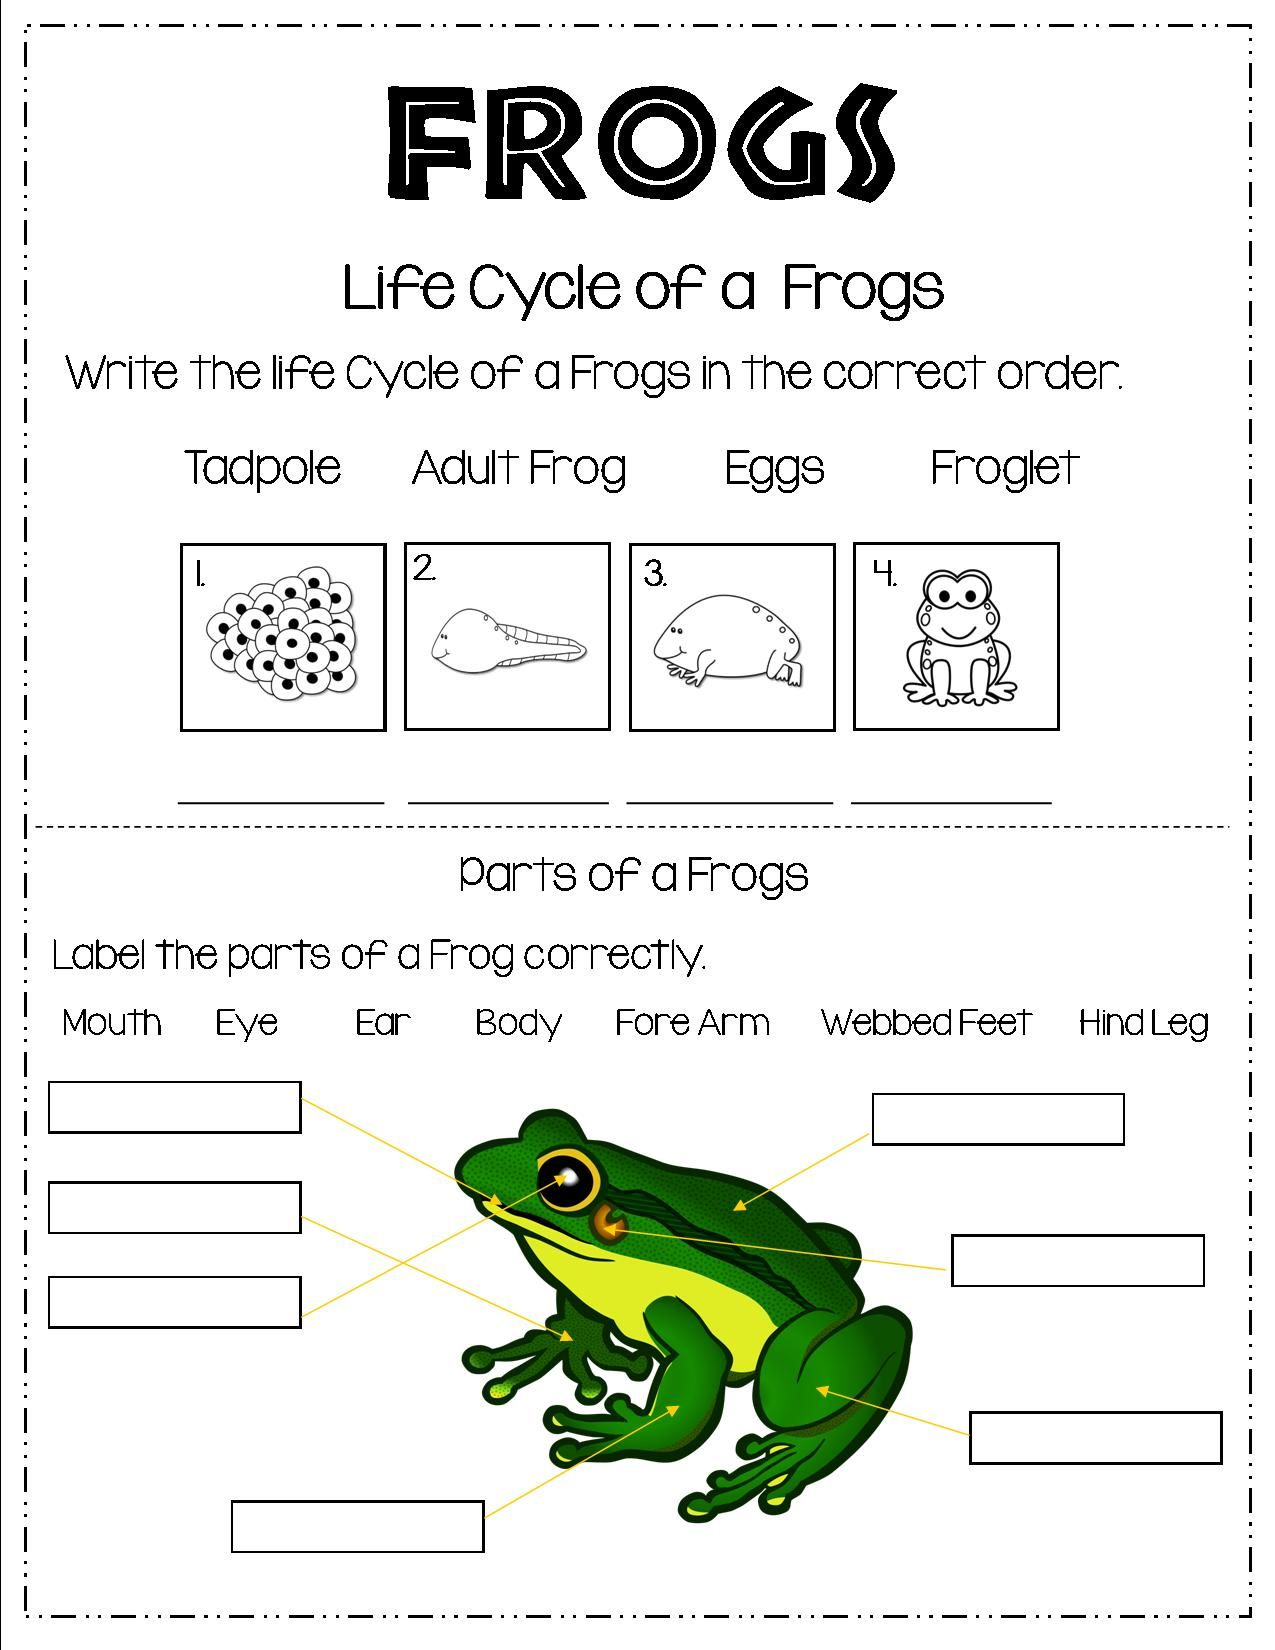 Grade 1 And Grade 2 Students Can Learn About Amphibians